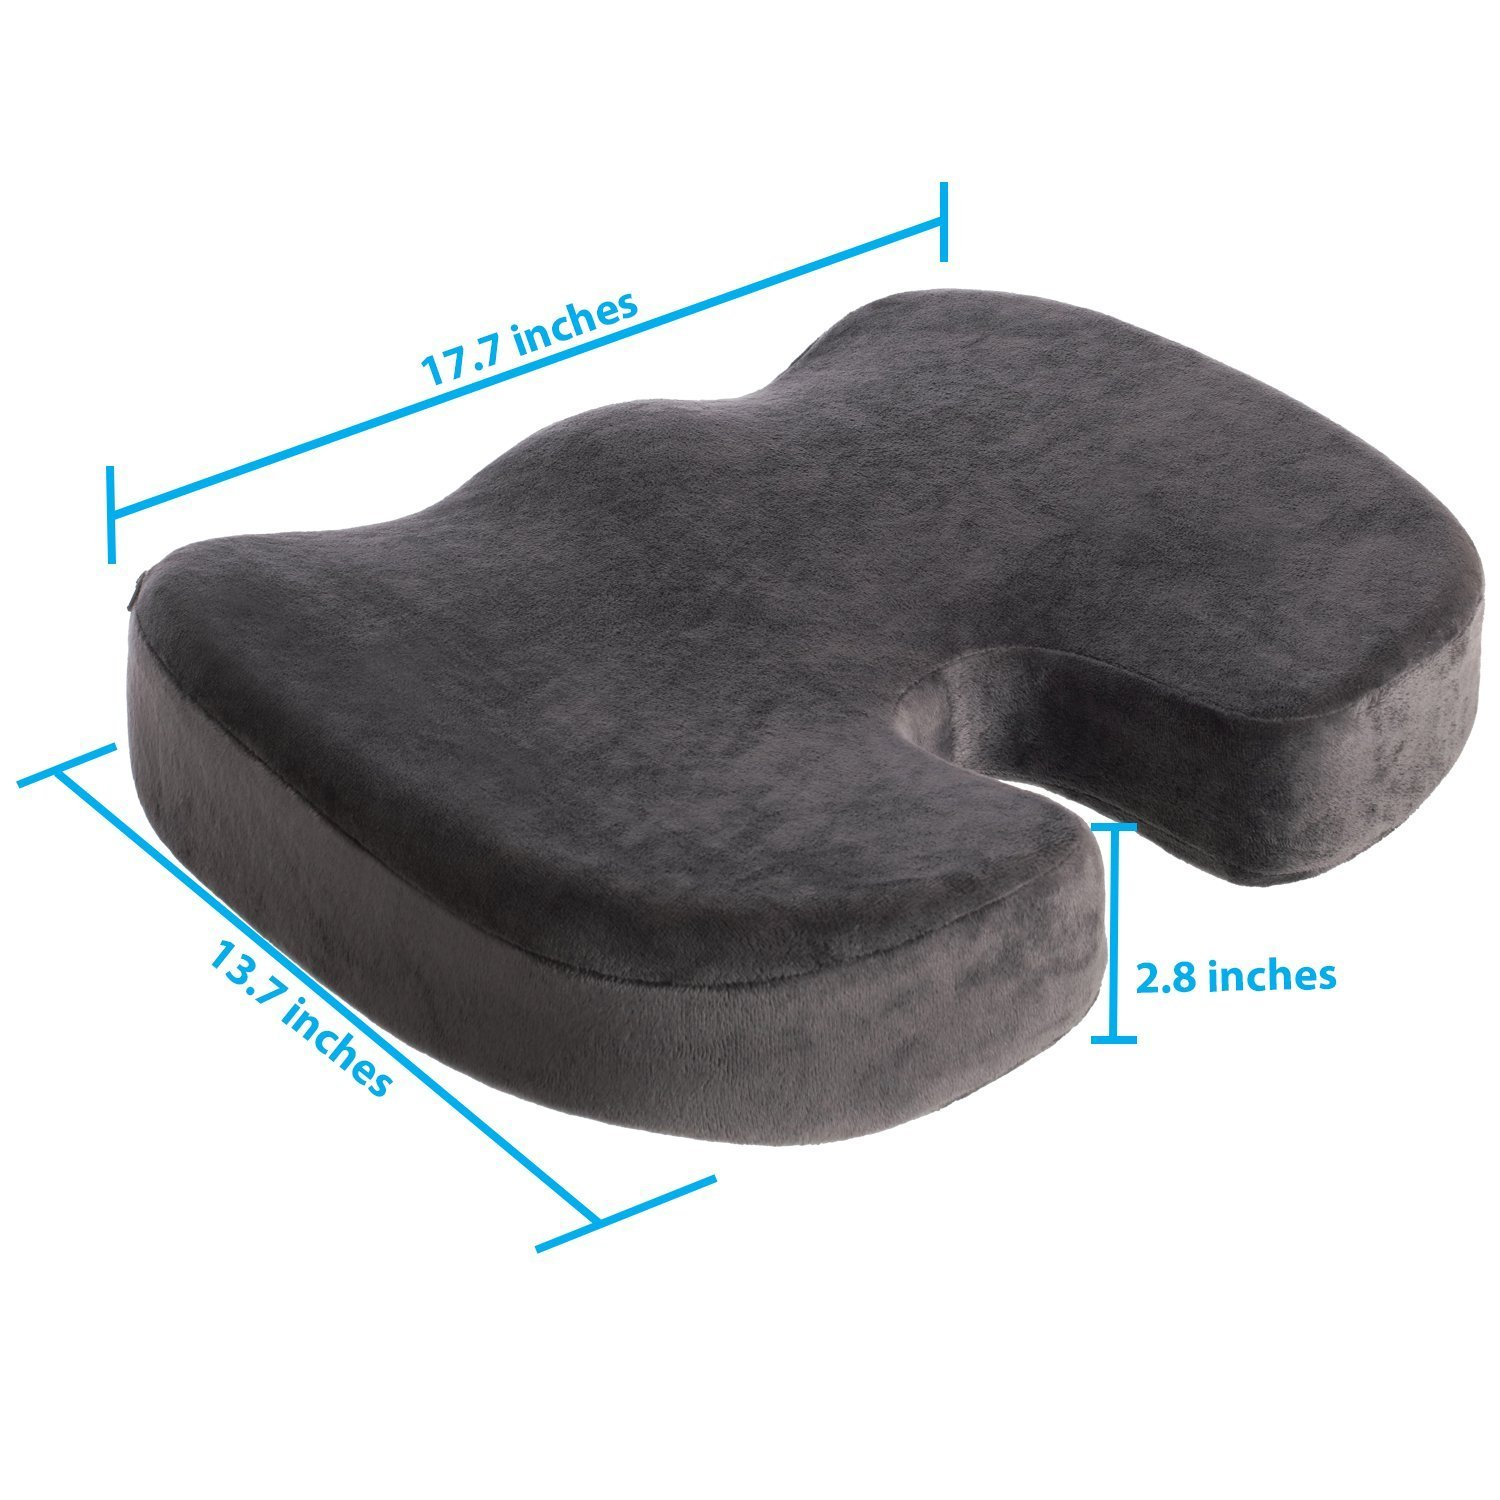 amazon com naturawell orthopedic comfort seat cushion gray